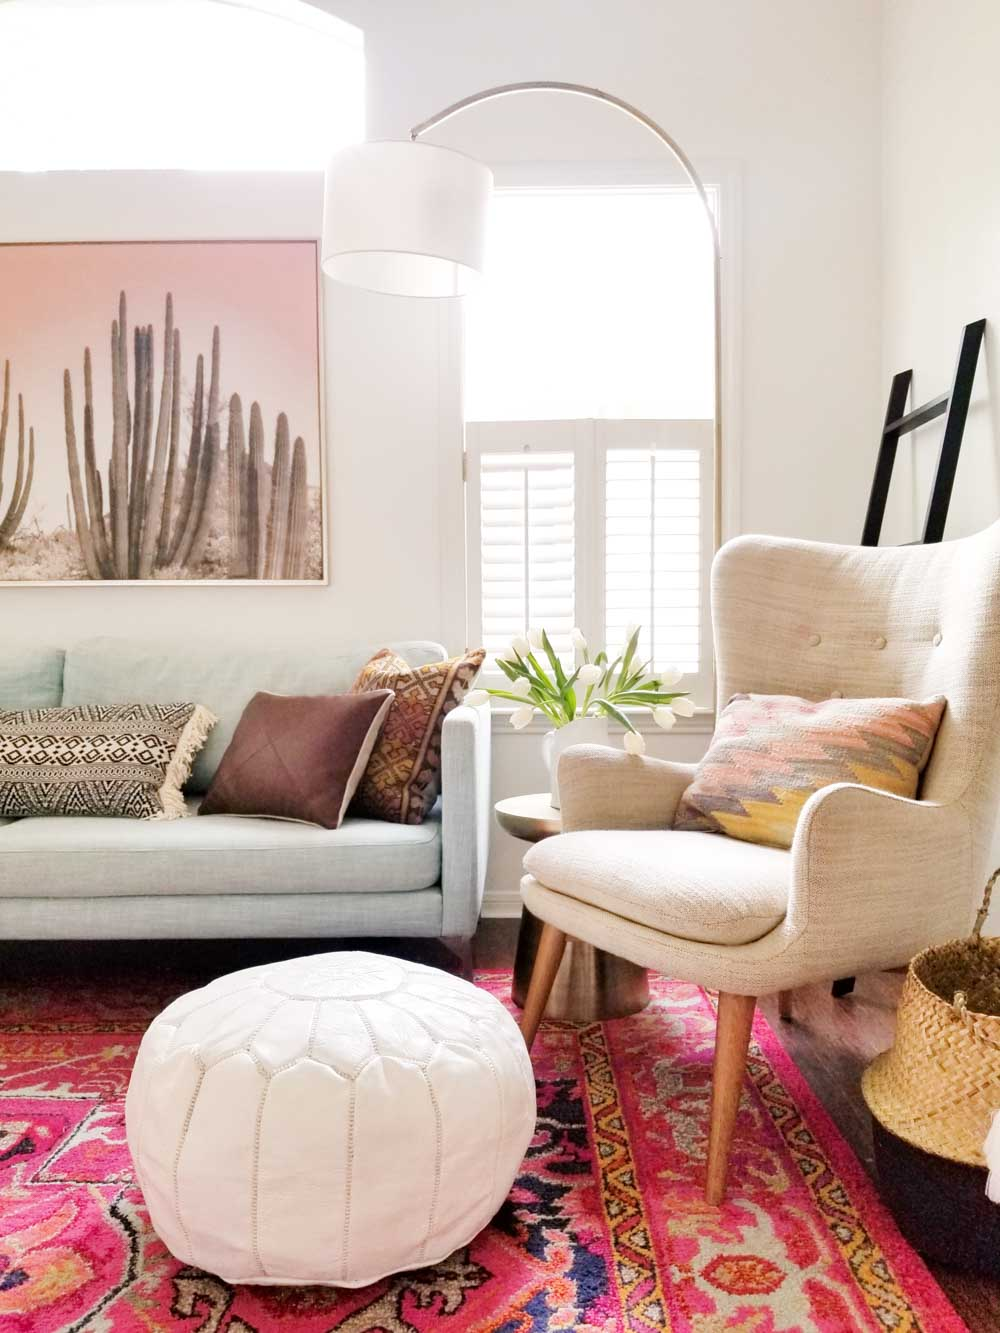 Design*Sponge | A Texas Home Full of Natural Light and Potential